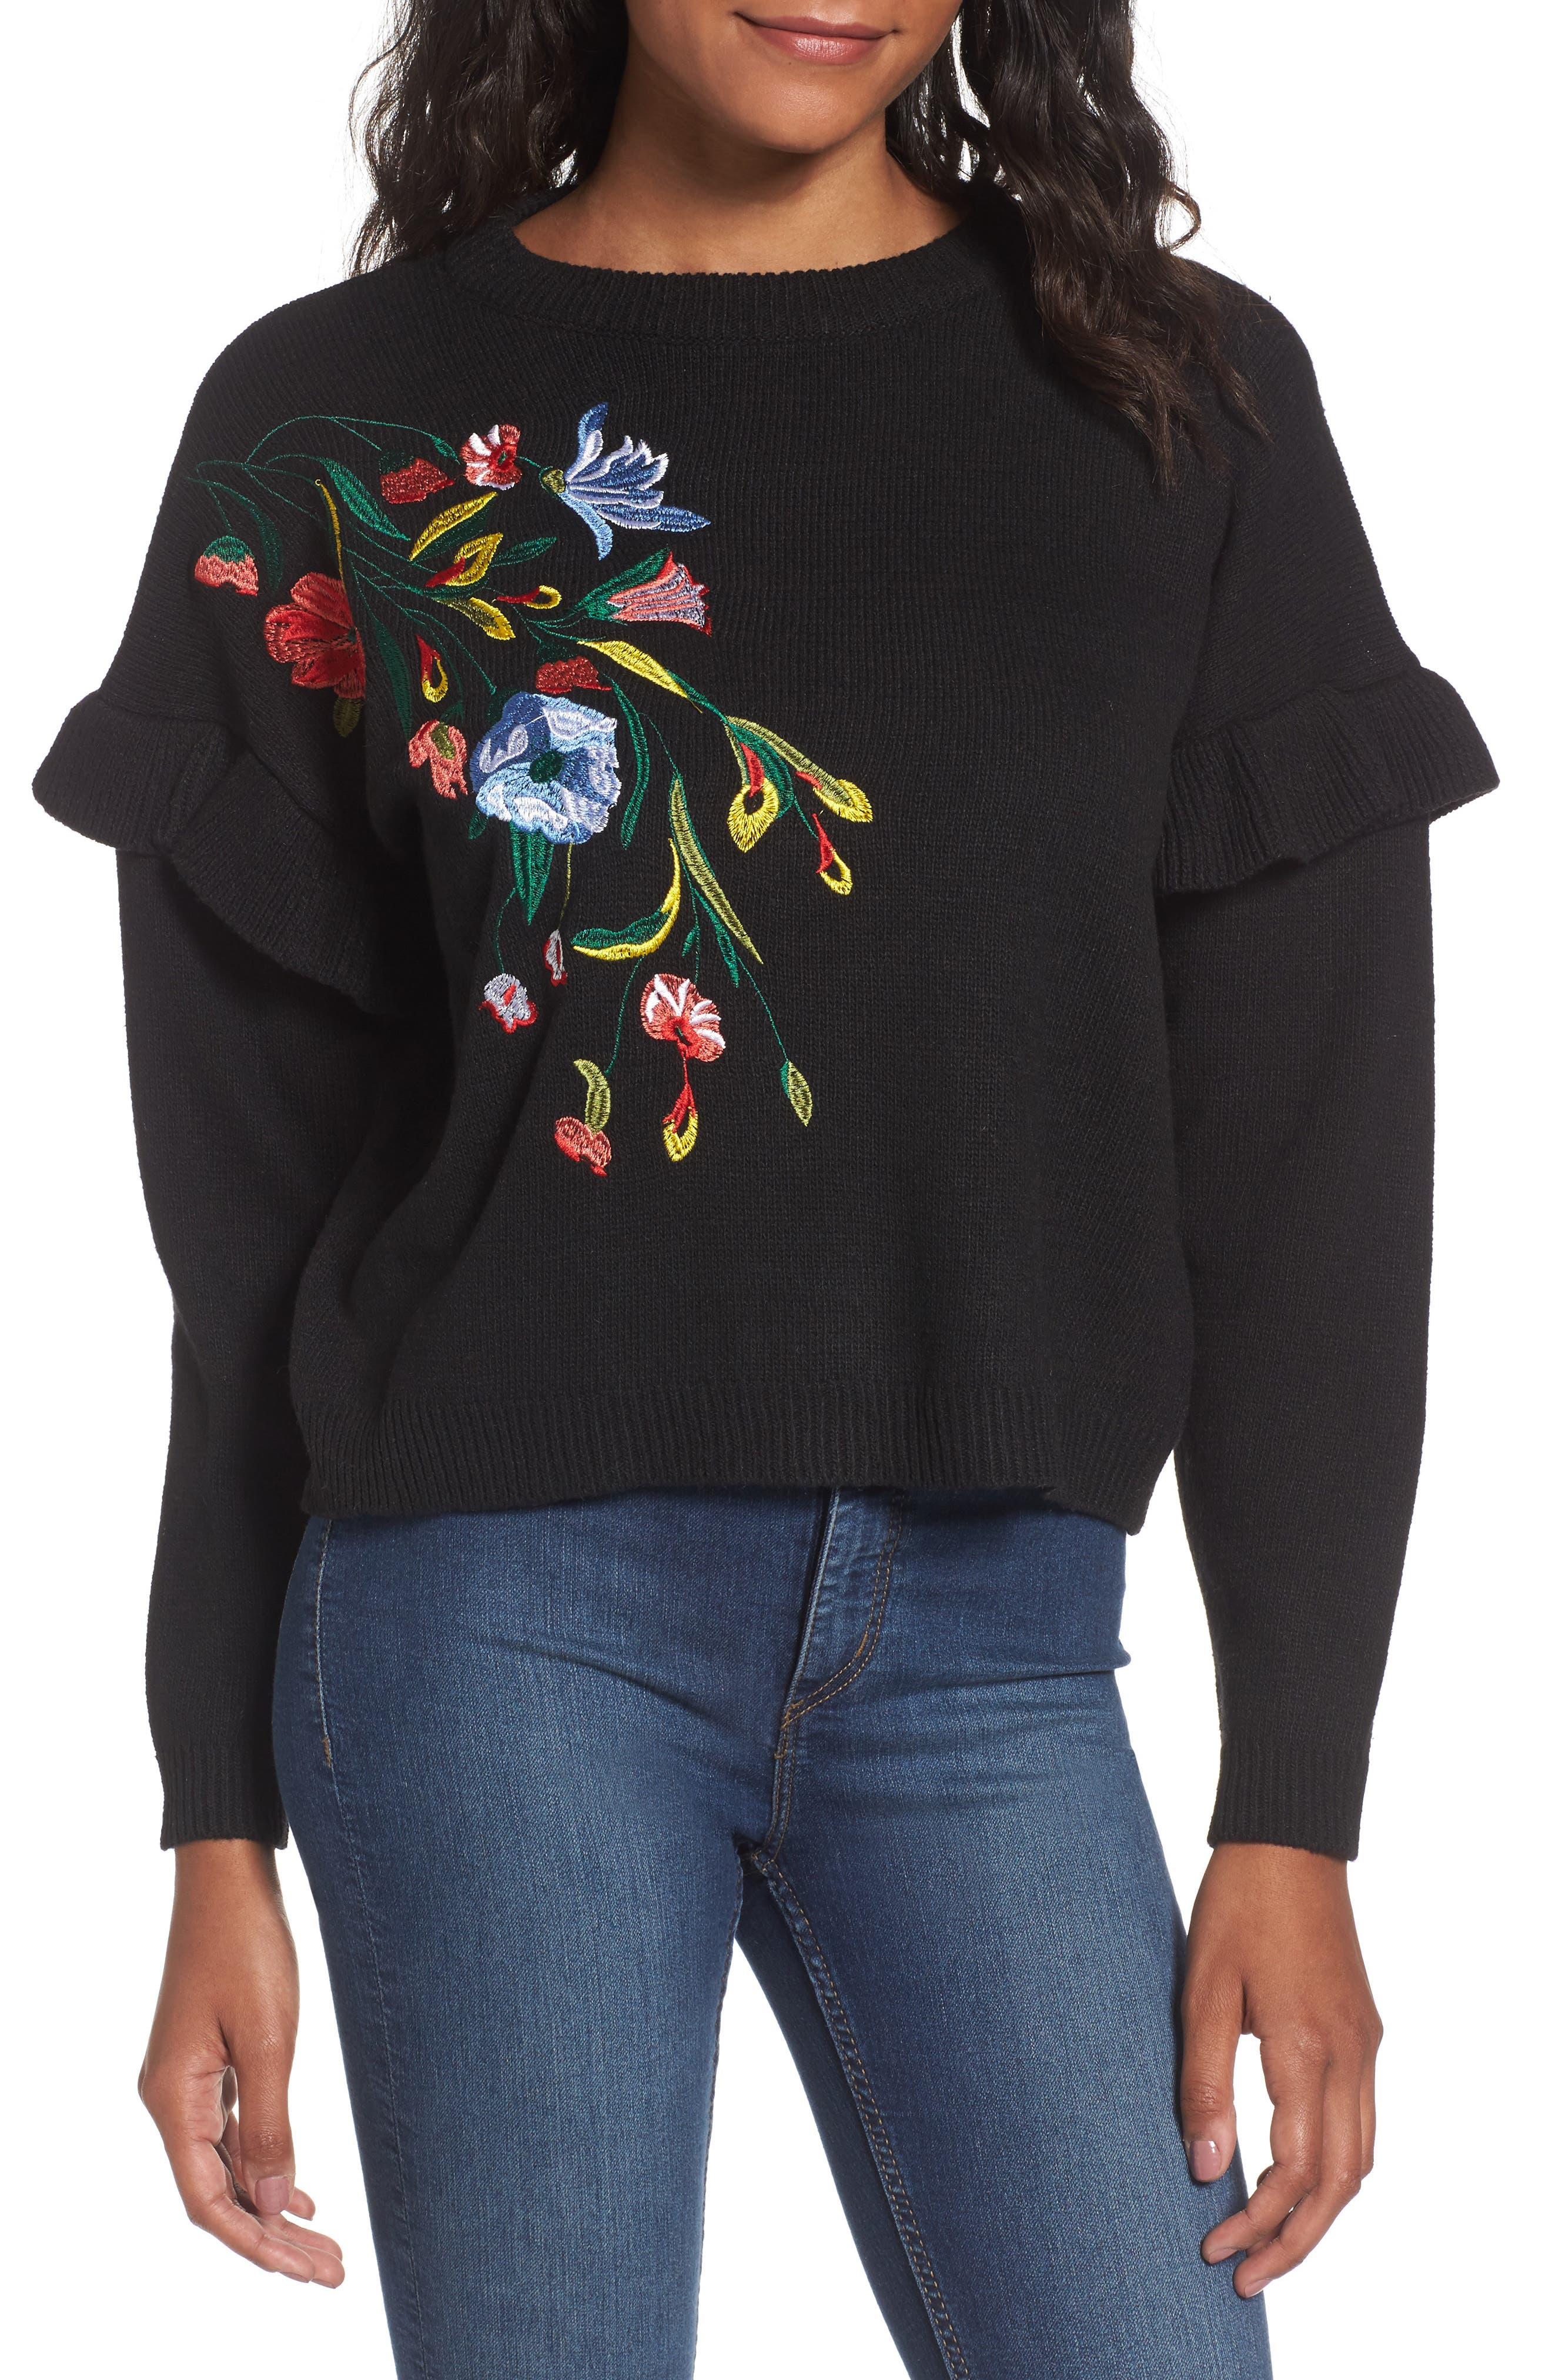 Alternate Image 1 Selected - Woven Heart Ruffle Sleeve Embroidered Sweater